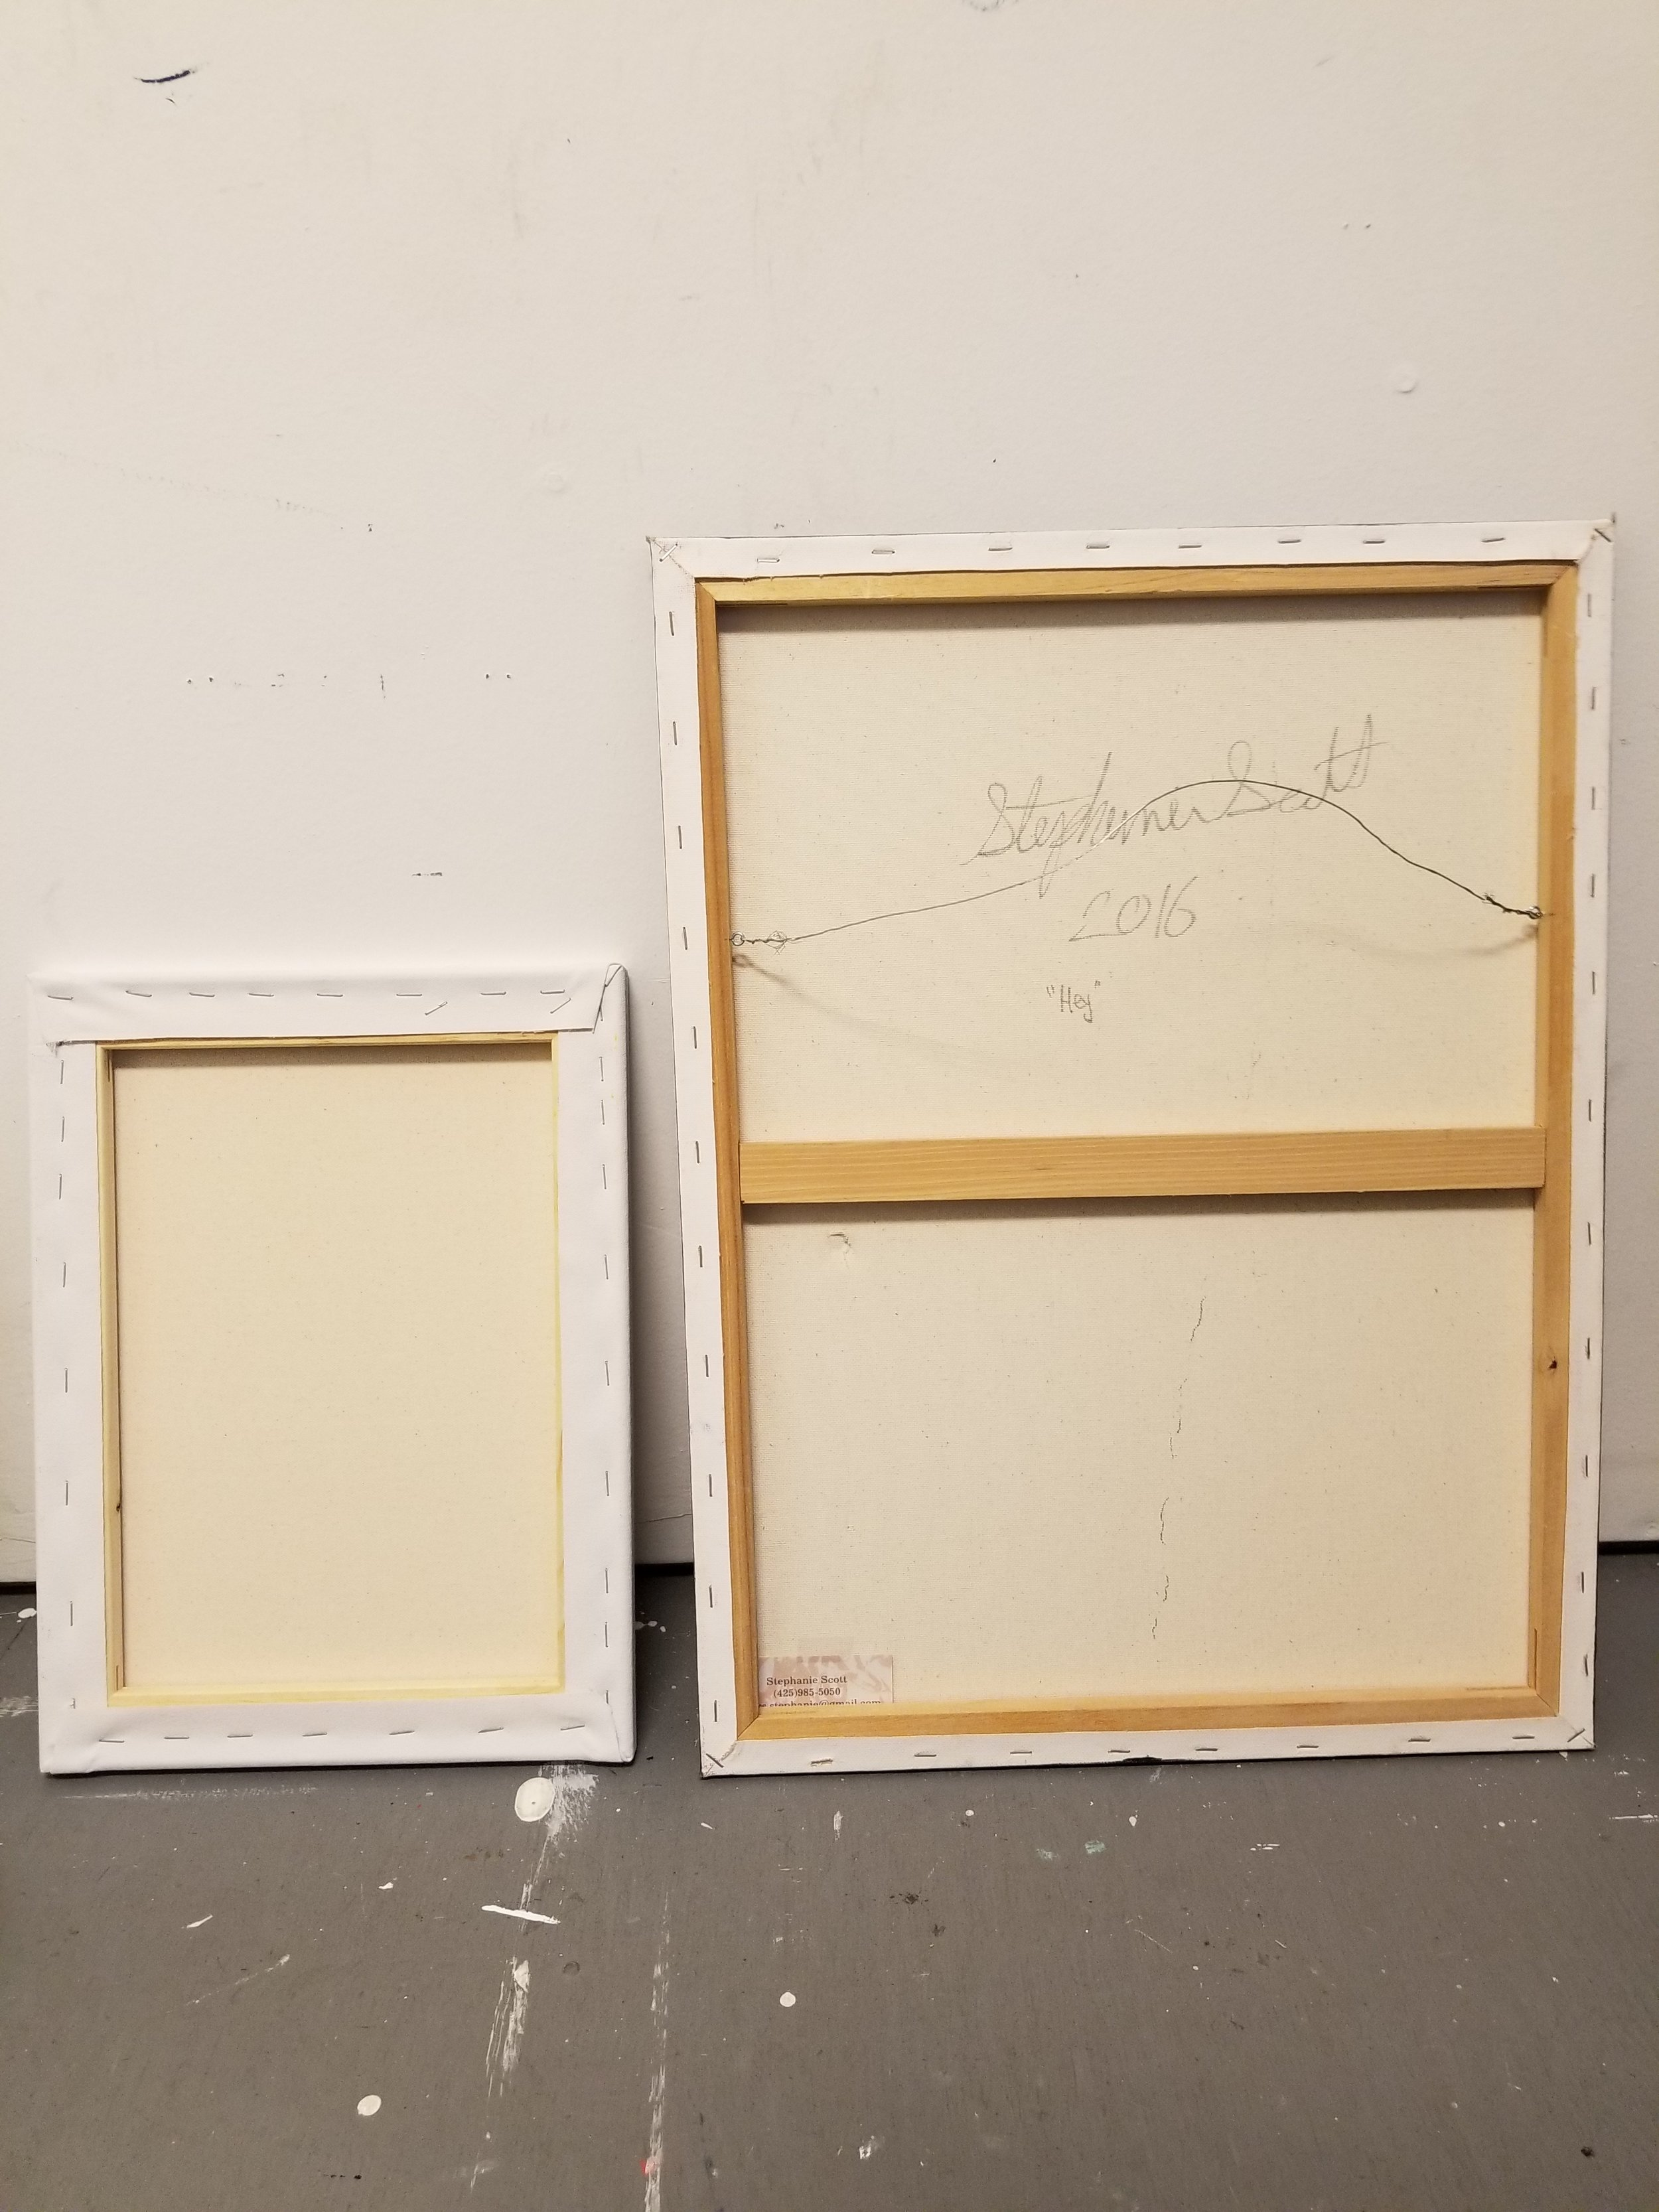 About to strip these old paintings!